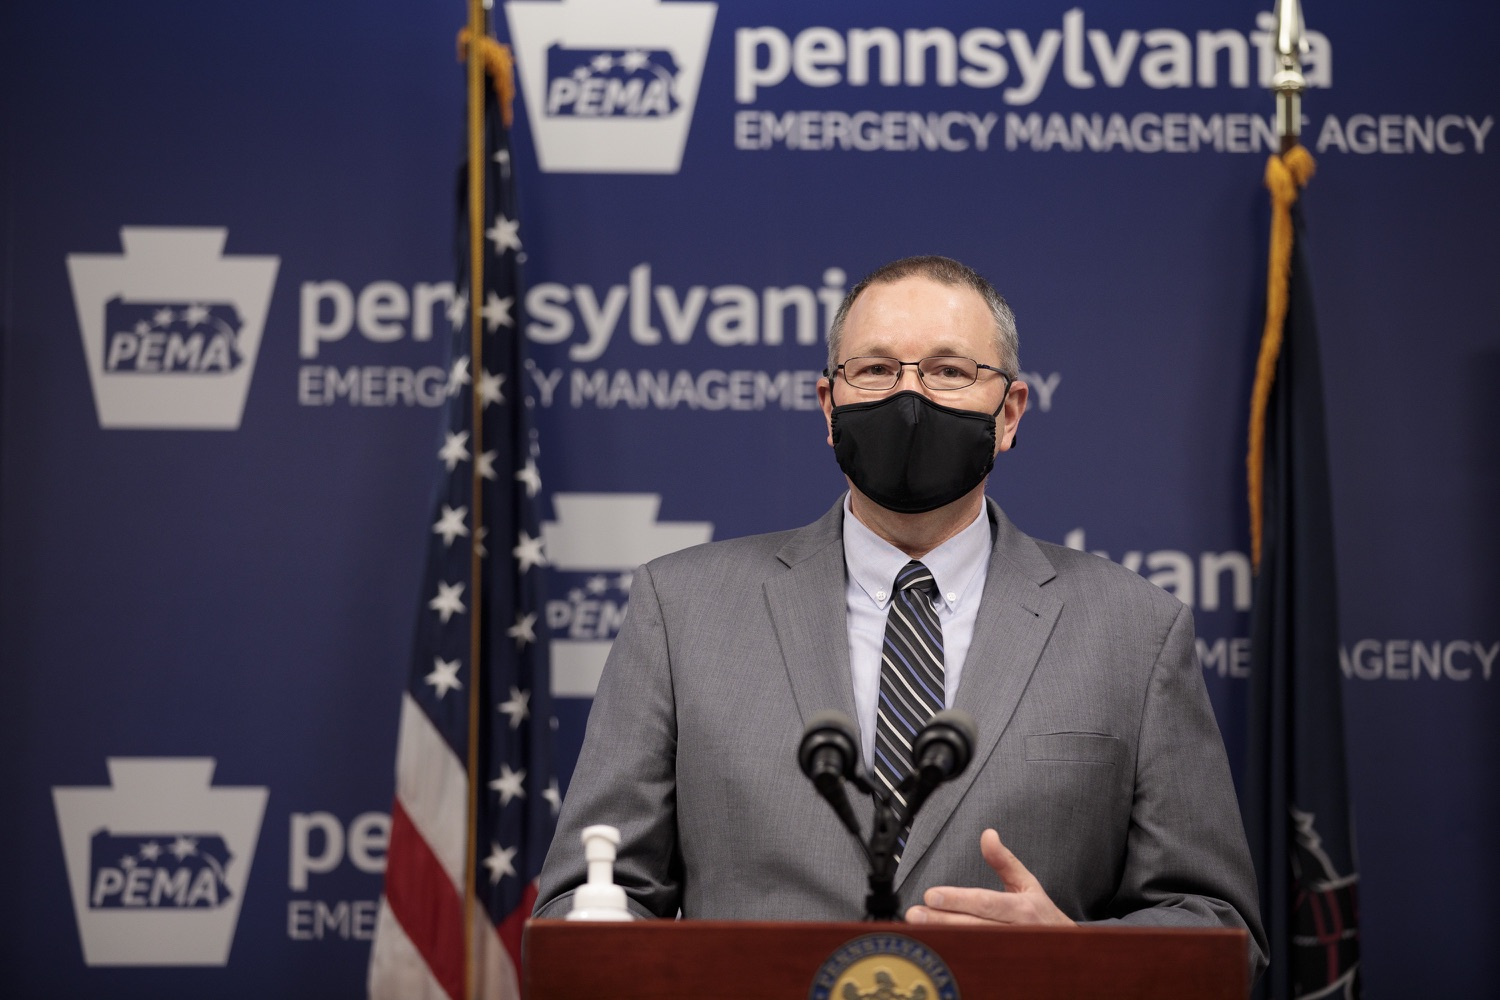 """<a href=""""https://filesource.wostreaming.net/commonwealthofpa/photo/18472_gov_vaccine_dz_15.jpg"""" target=""""_blank"""">⇣Download Photo<br></a>PEMA Director Randy Padfield speaks at the press conference.  The commonwealths COVID-19 vaccination distribution plan was designed to be fluid and flexible to meet guidance and recommendations from the federal government. Today, Governor Tom Wolf and Secretary of Health Dr. Rachel Levine announced the fourth version of the plan, detailing the updates and how the state is working to ensure safe, swift implementation. Harrisburg, PA  January 8, 2021"""